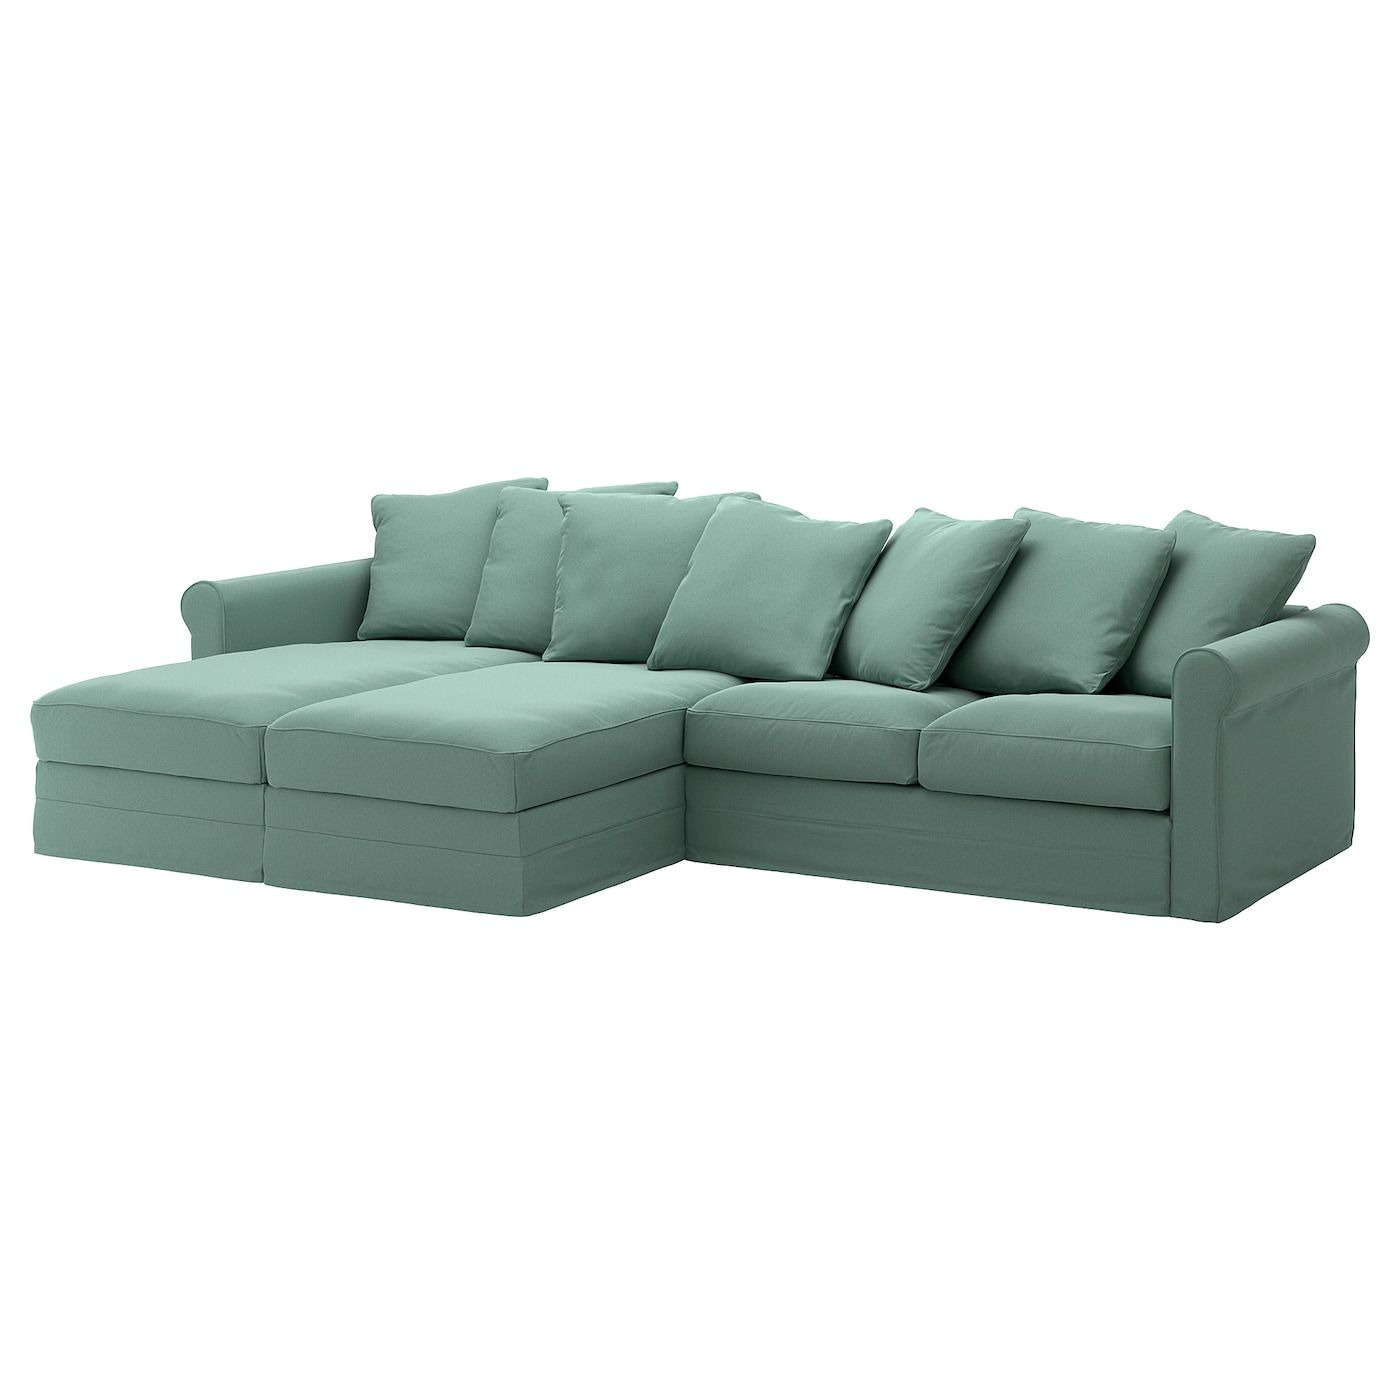 Gronlid Sectional 4 Seat With Chaise Ljungen Light Green